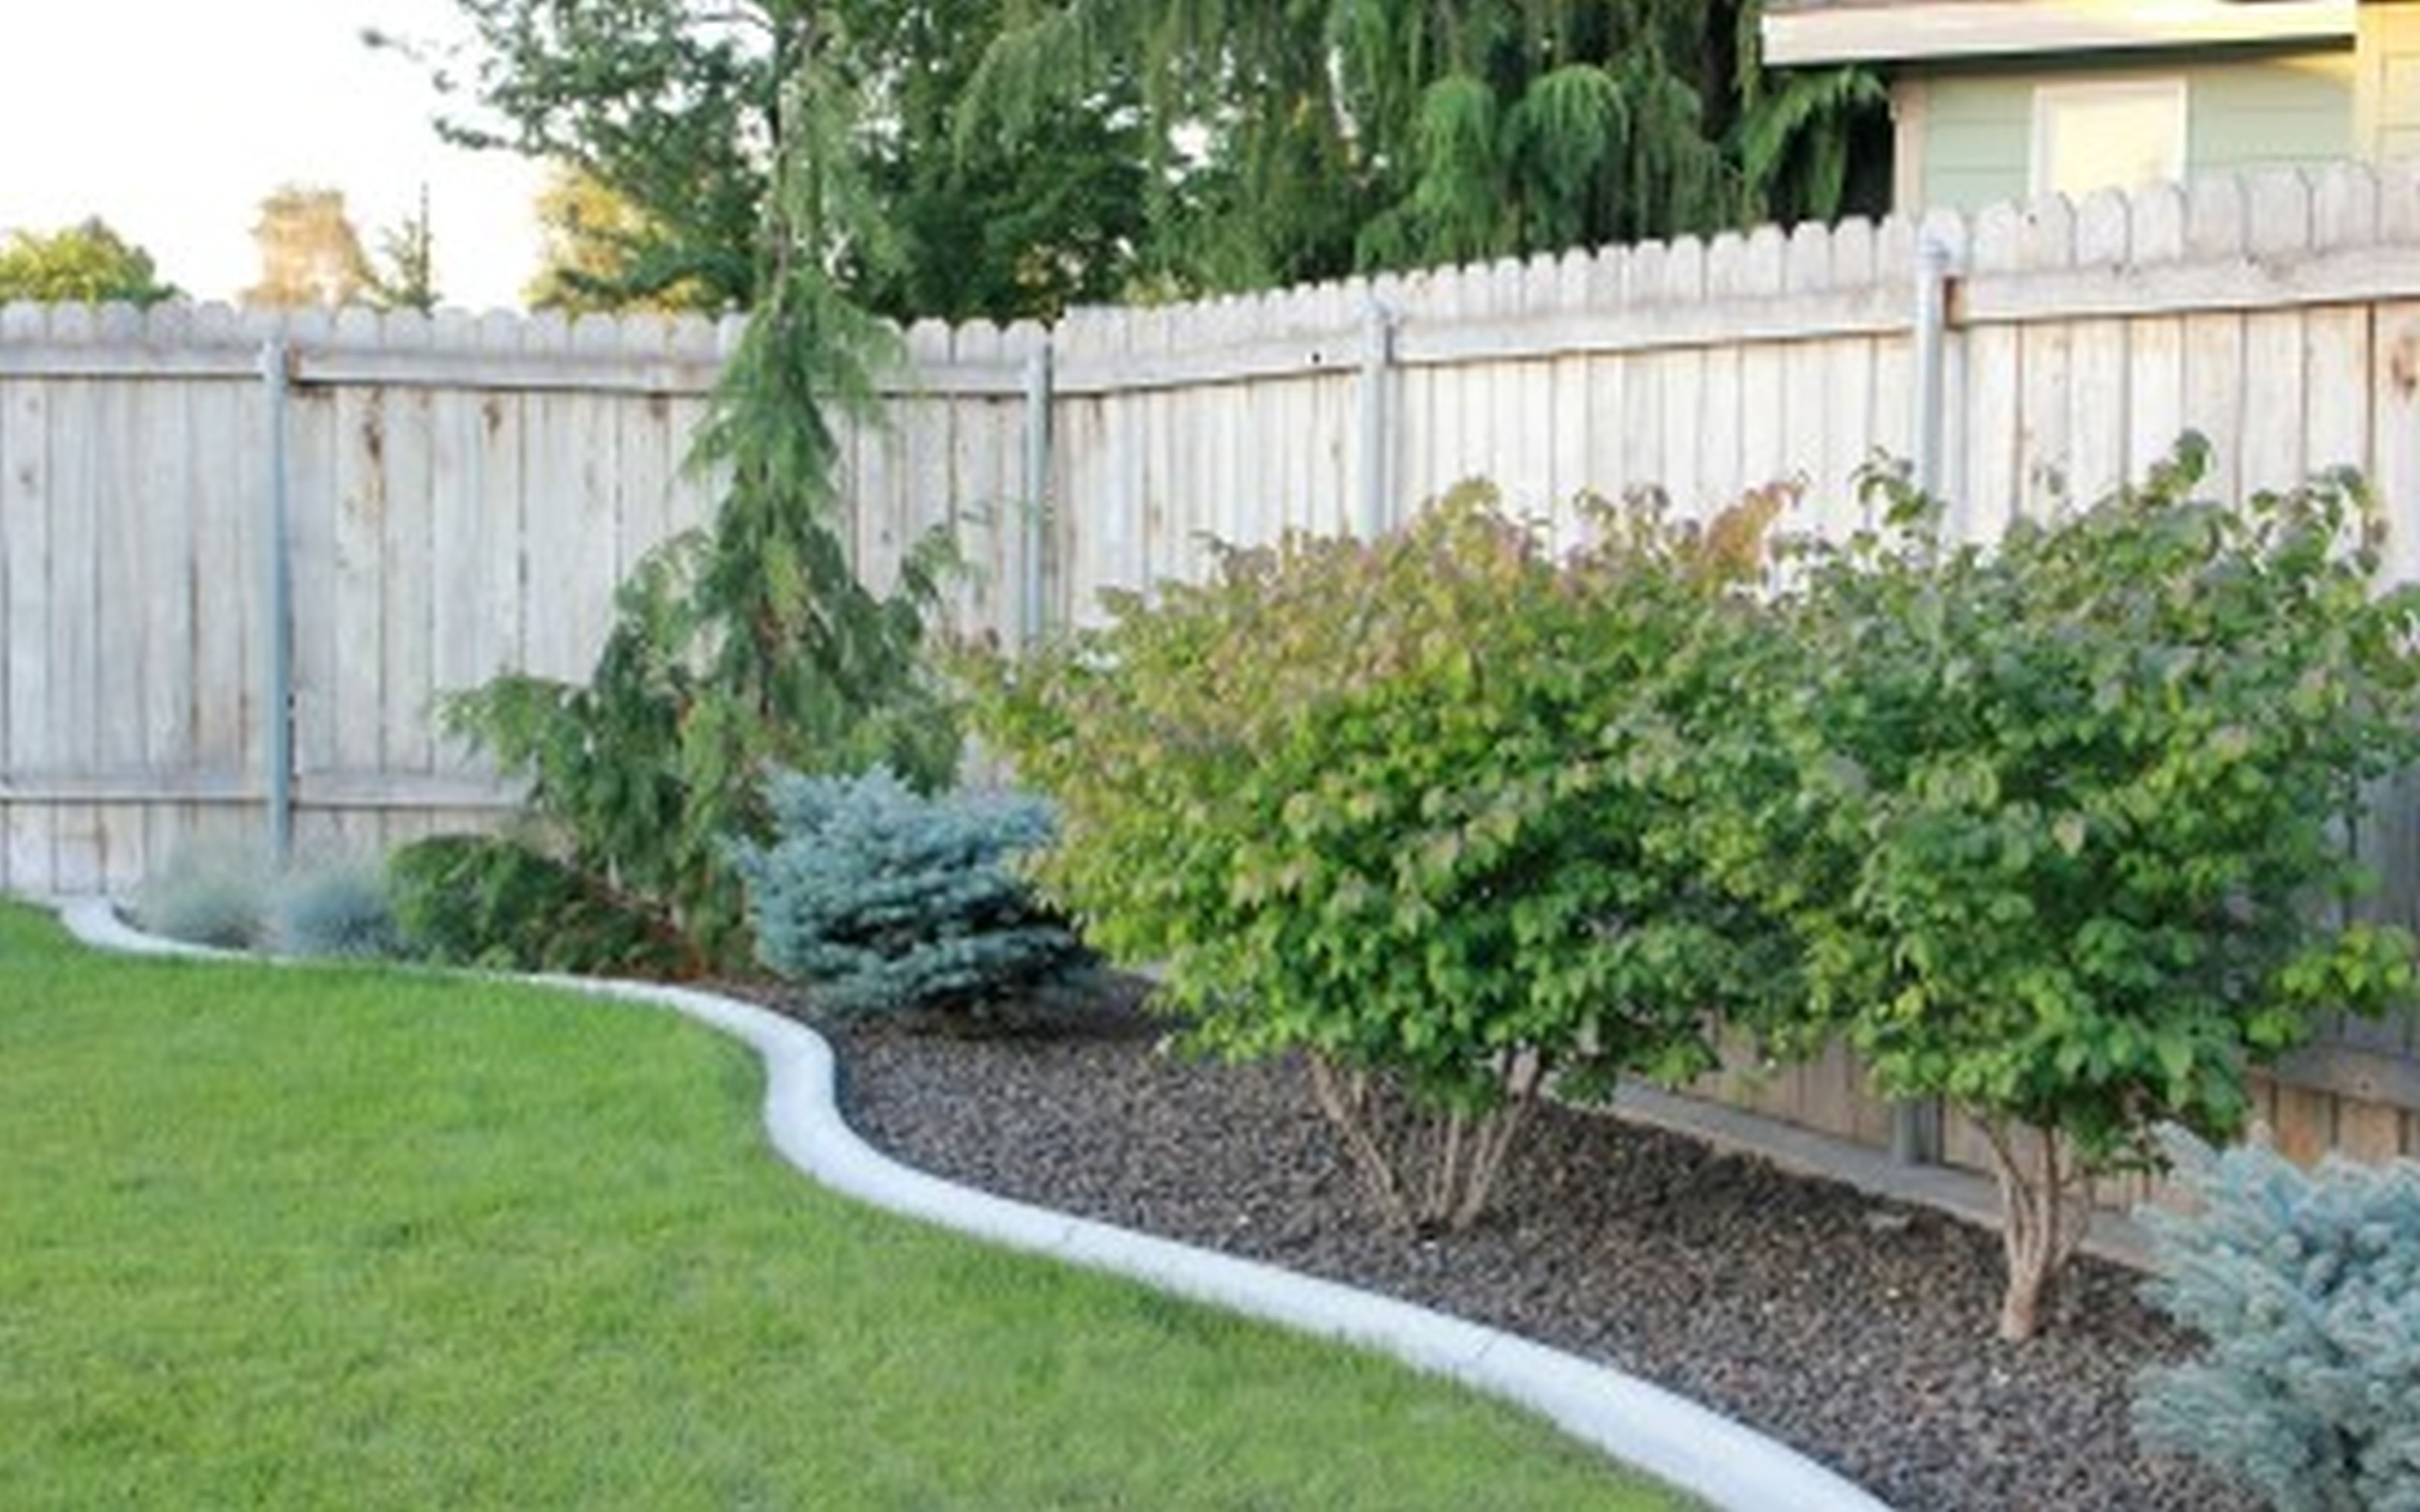 10 Spectacular Landscaping Ideas For Backyard On A Budget backyard landscape ideas on a budget large and beautiful photos 1 2021